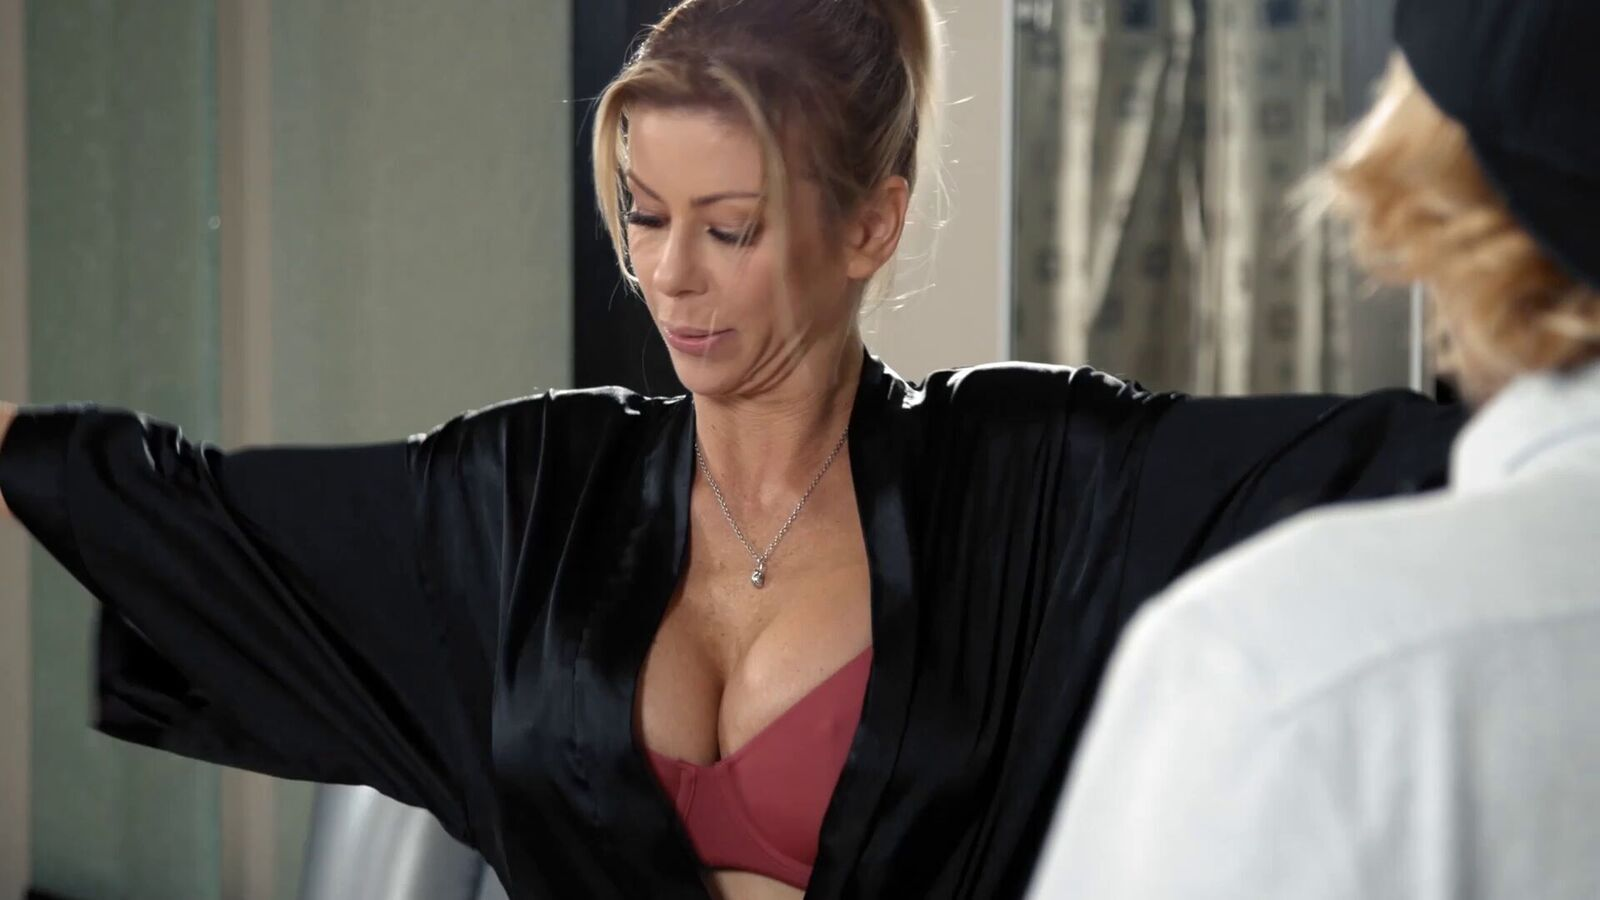 Alexis Fawx: The Ultimate MILF Compilation